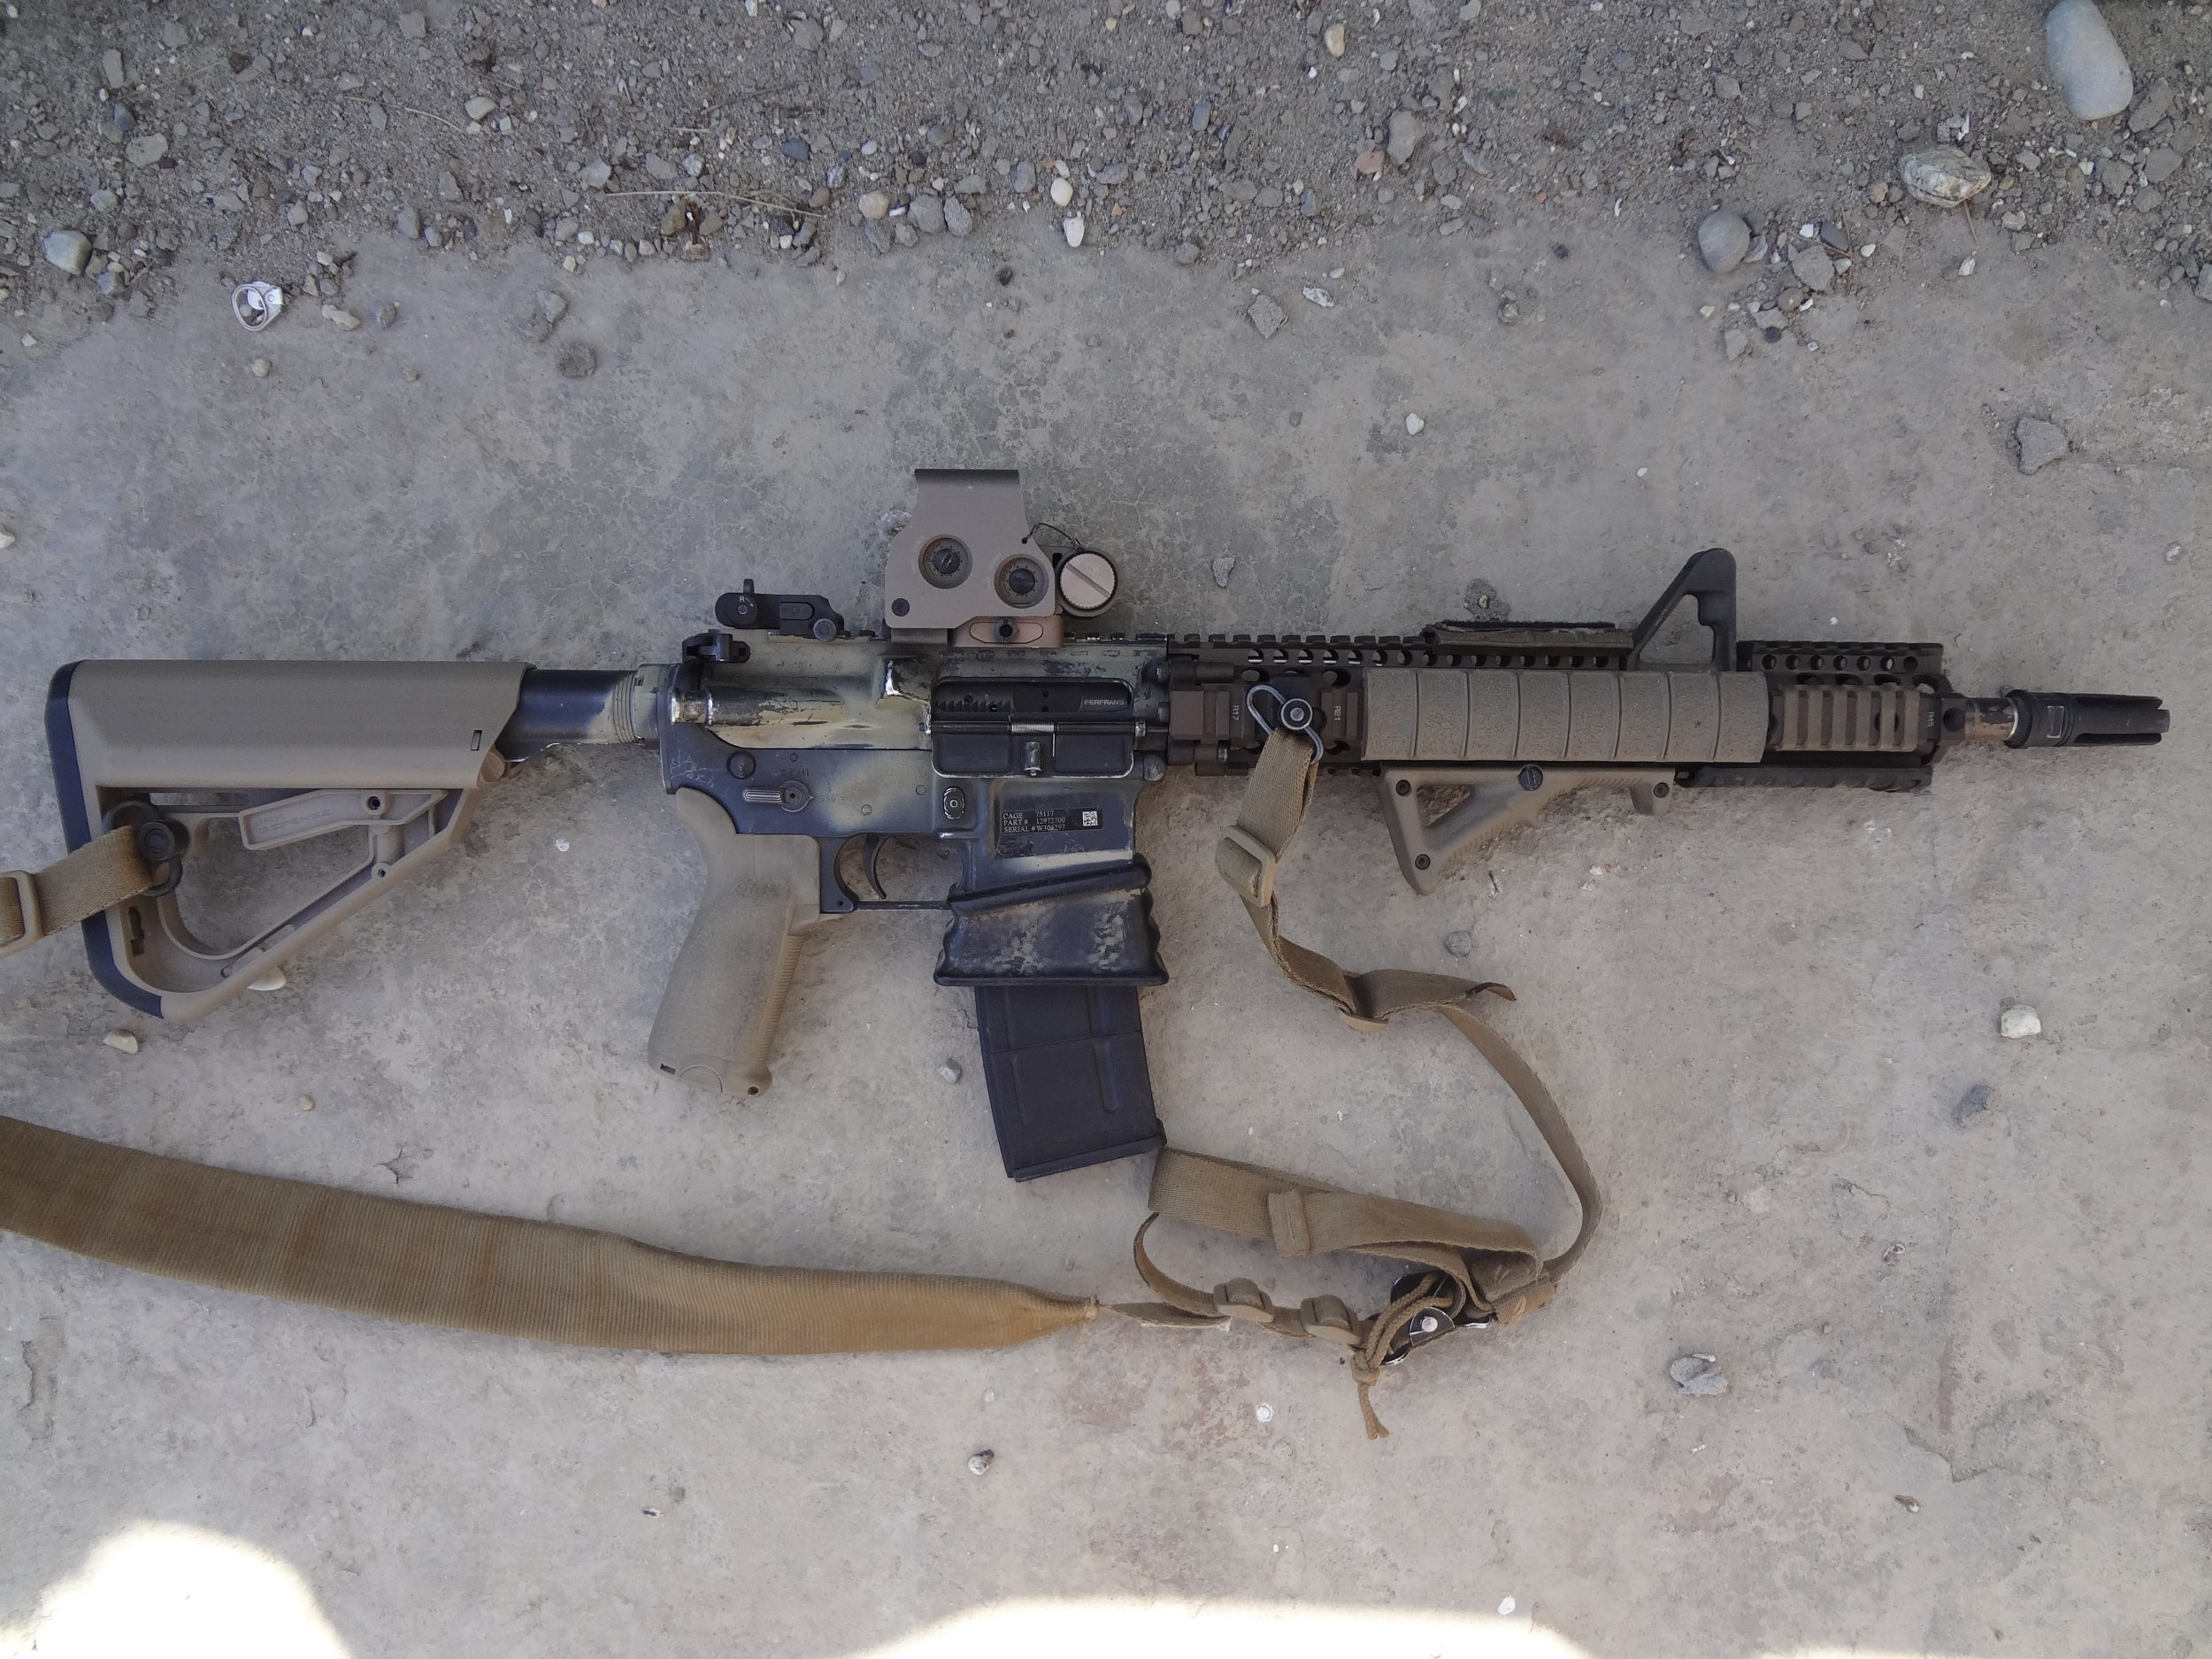 The Endless Ghost Recon Weapon Model Wish List - GR - Weapon